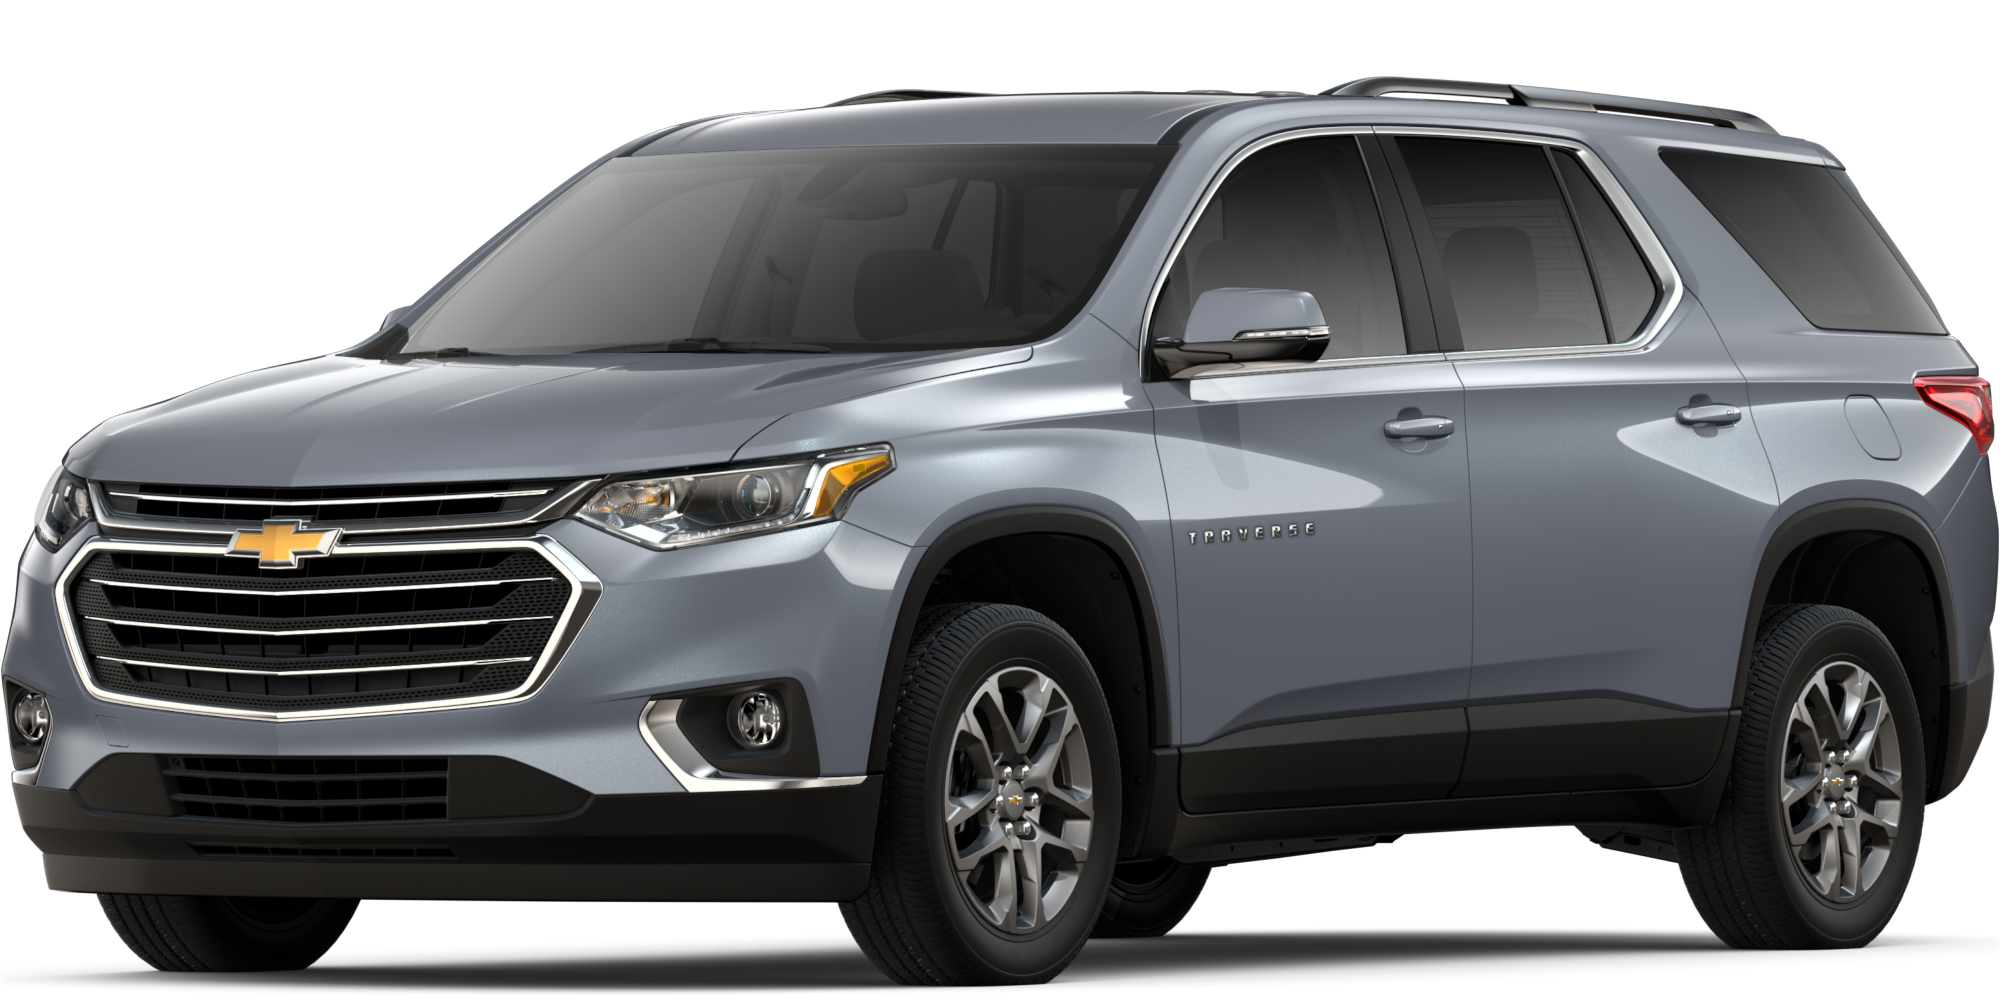 52 Gallery of 2019 Chevrolet Traverses Model by 2019 Chevrolet Traverses